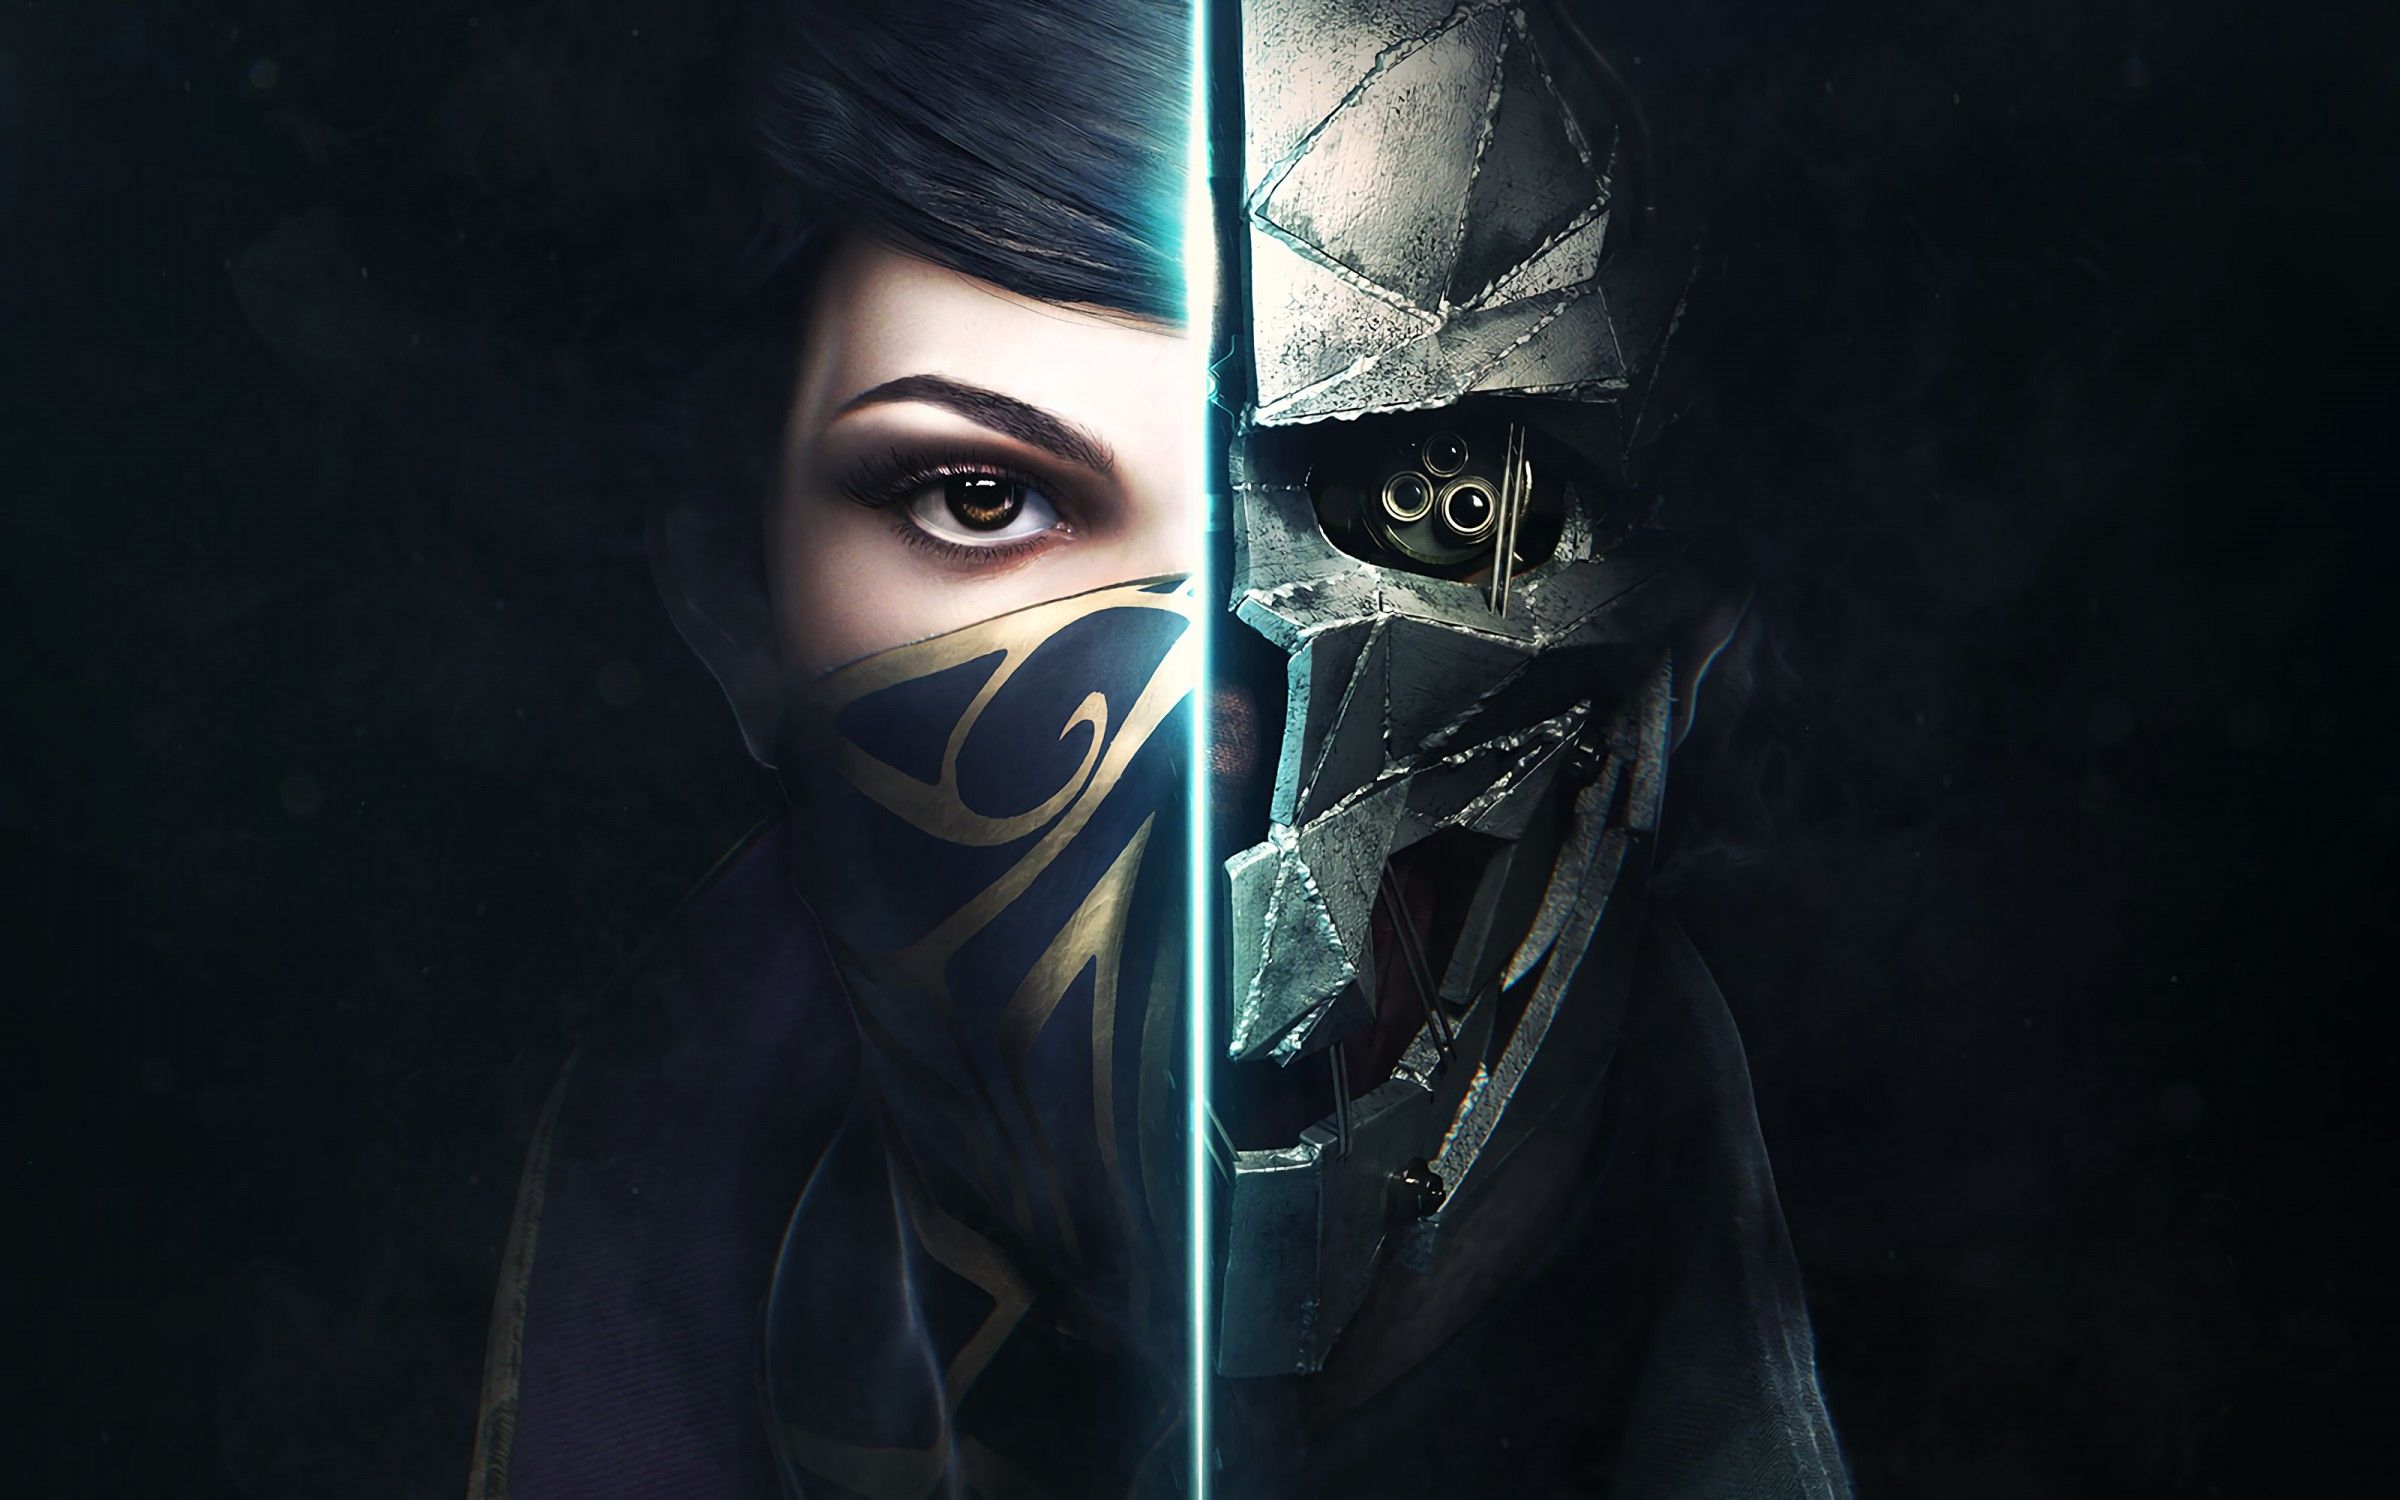 Dishonored Hd Wallpapers Backgrounds Wallpaper 18201024